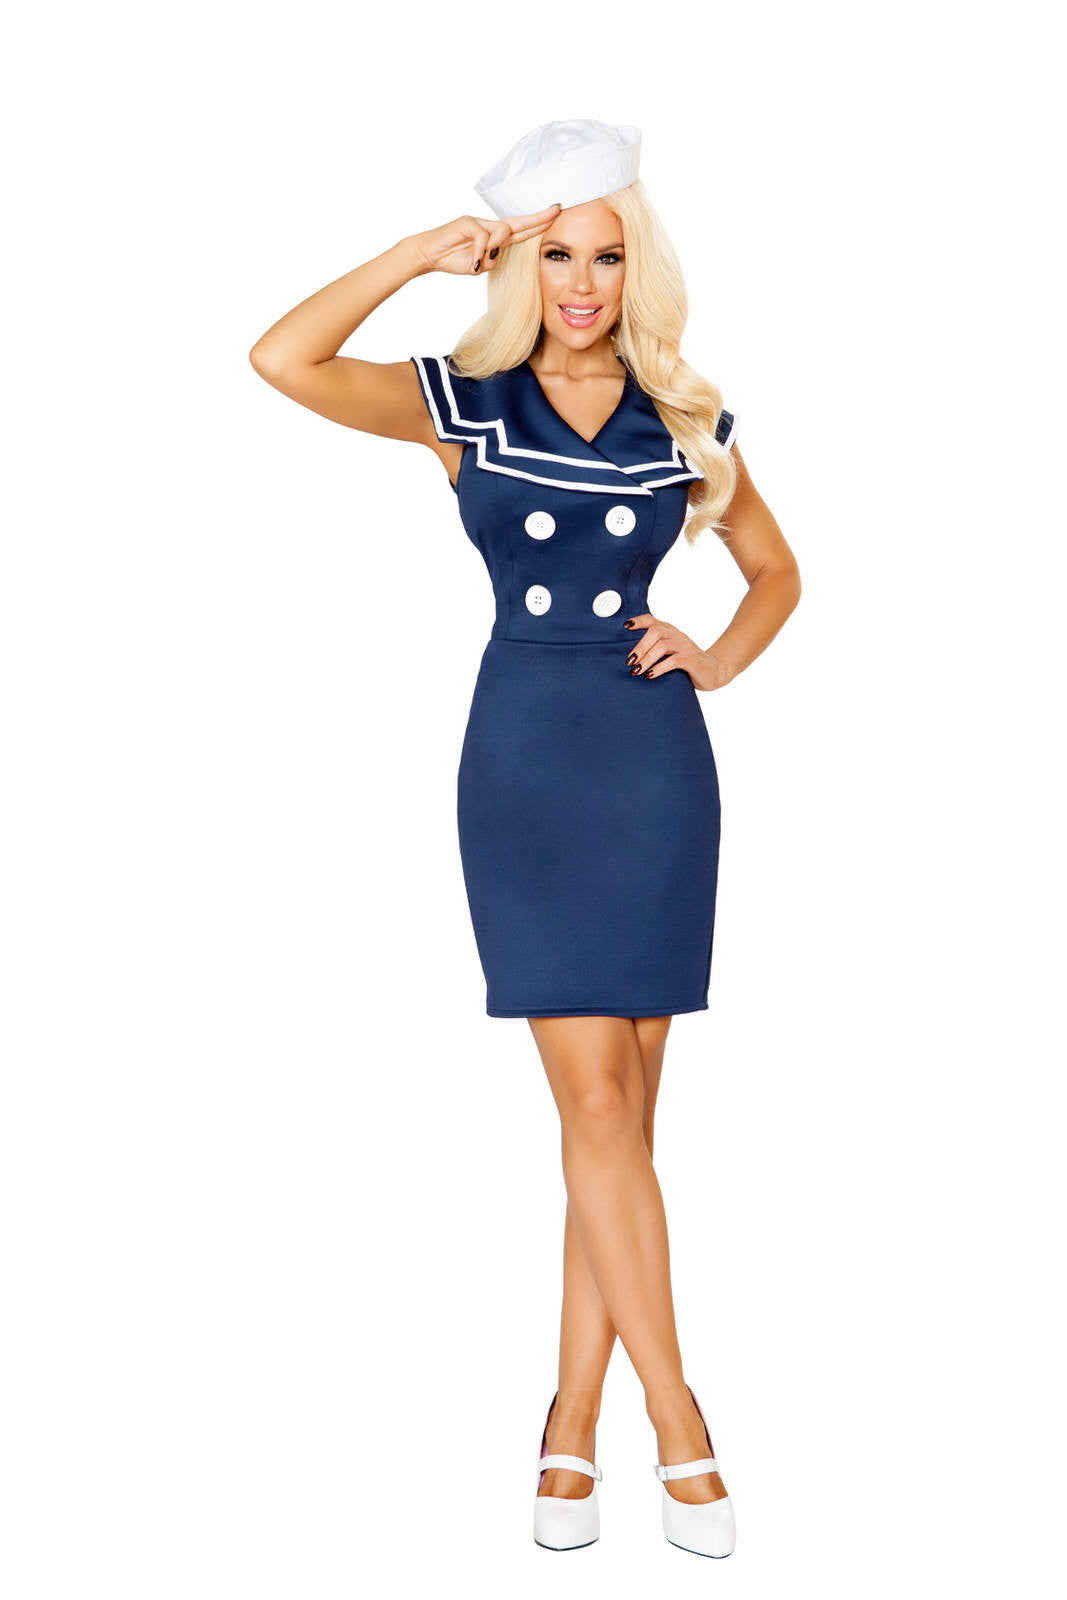 10122 - 2pc Classy Sailor ${description} | Roma Costume and Roma Confidential wholesale manufacturer of Women Apparel bulk world wide wholesale and world wide drop ship services for Adult Halloween Costumes, Sexy and Elegant Lingerie, Rave Clothing, Club wear, and Christmas Costumes. Costumes, Roma Costume, Inc., Roma Costume, Roma Confidential, Wholesale clothing, drop ship, drop ship service, Wholesale Lingerie, Wholesale Adult Halloween Costumes, Rave Clothing, EDM Clothing, Festival Wear, Christmas Costumes, Clubwear, Club wear.